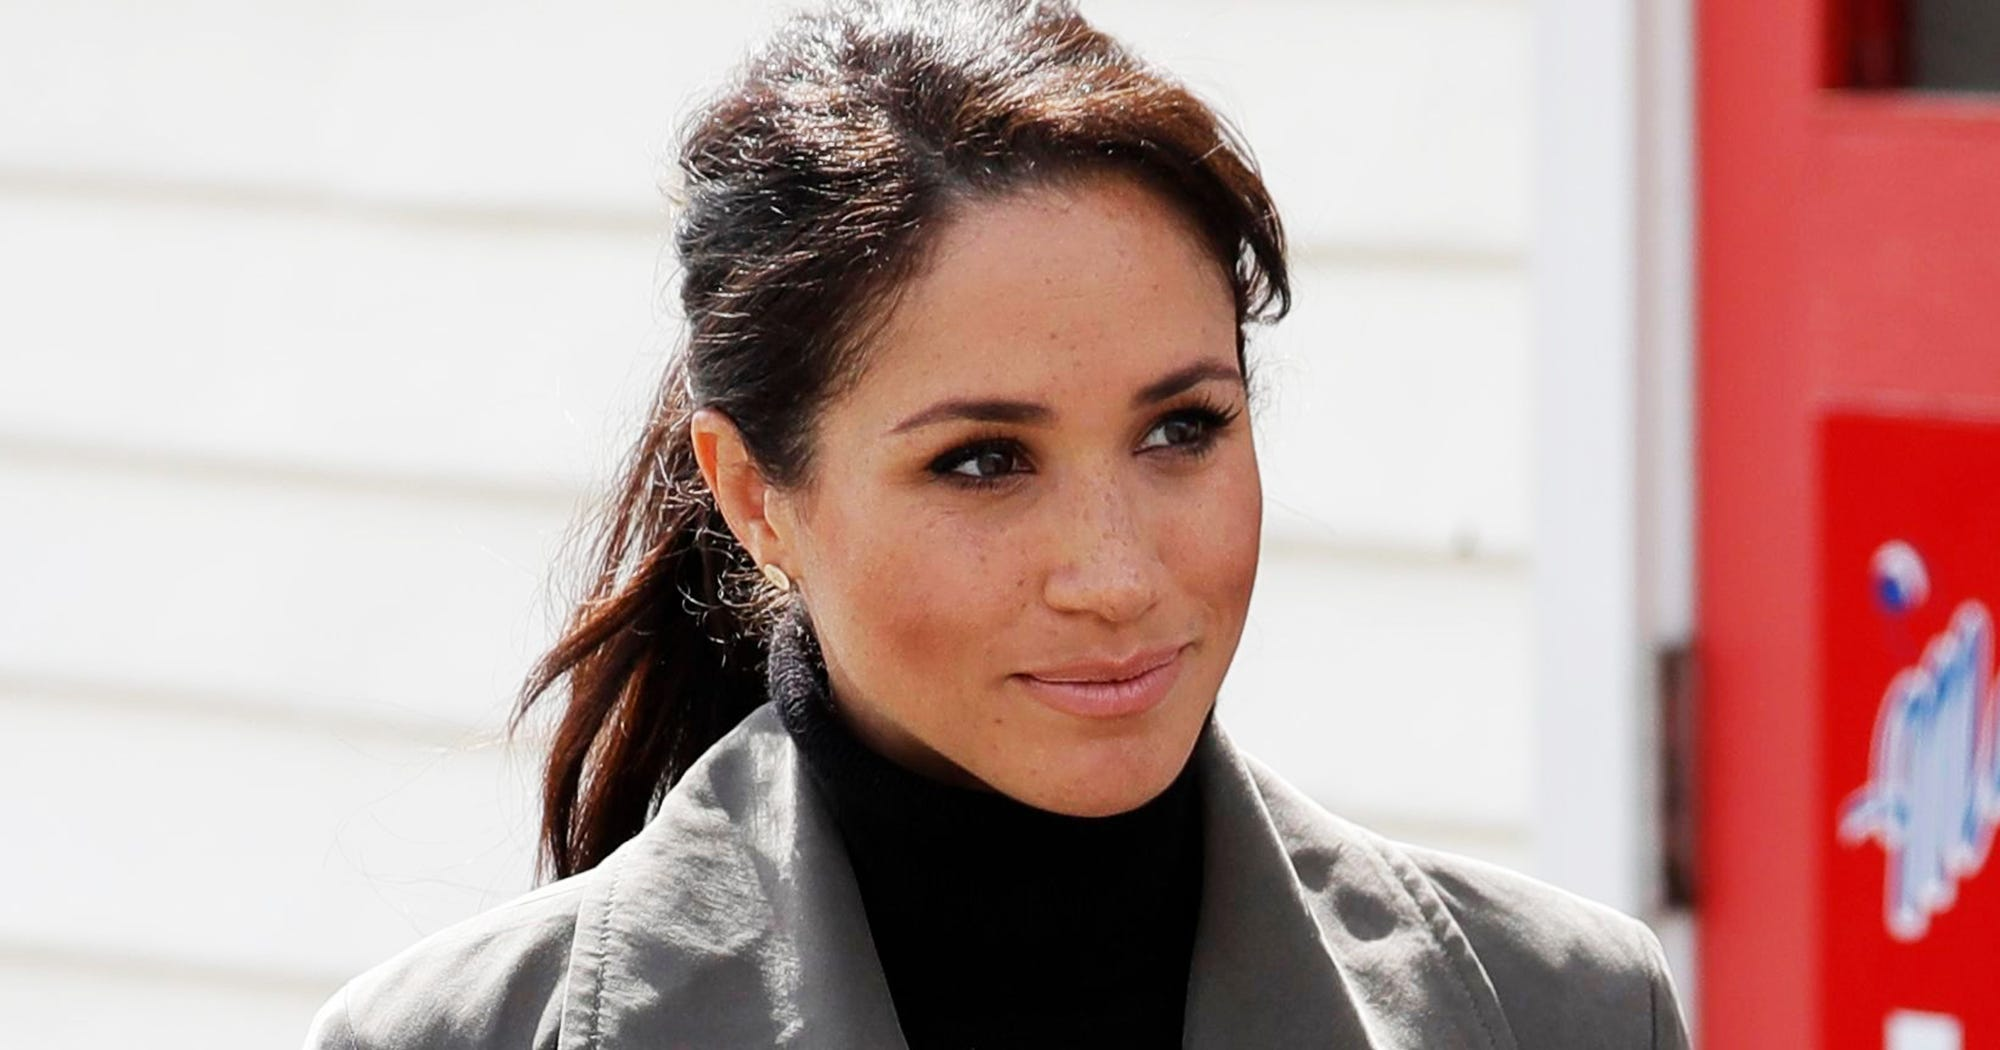 Here's What Really Went Down After Meghan Markle's Dad Allegedly Staged Those Pap Pics